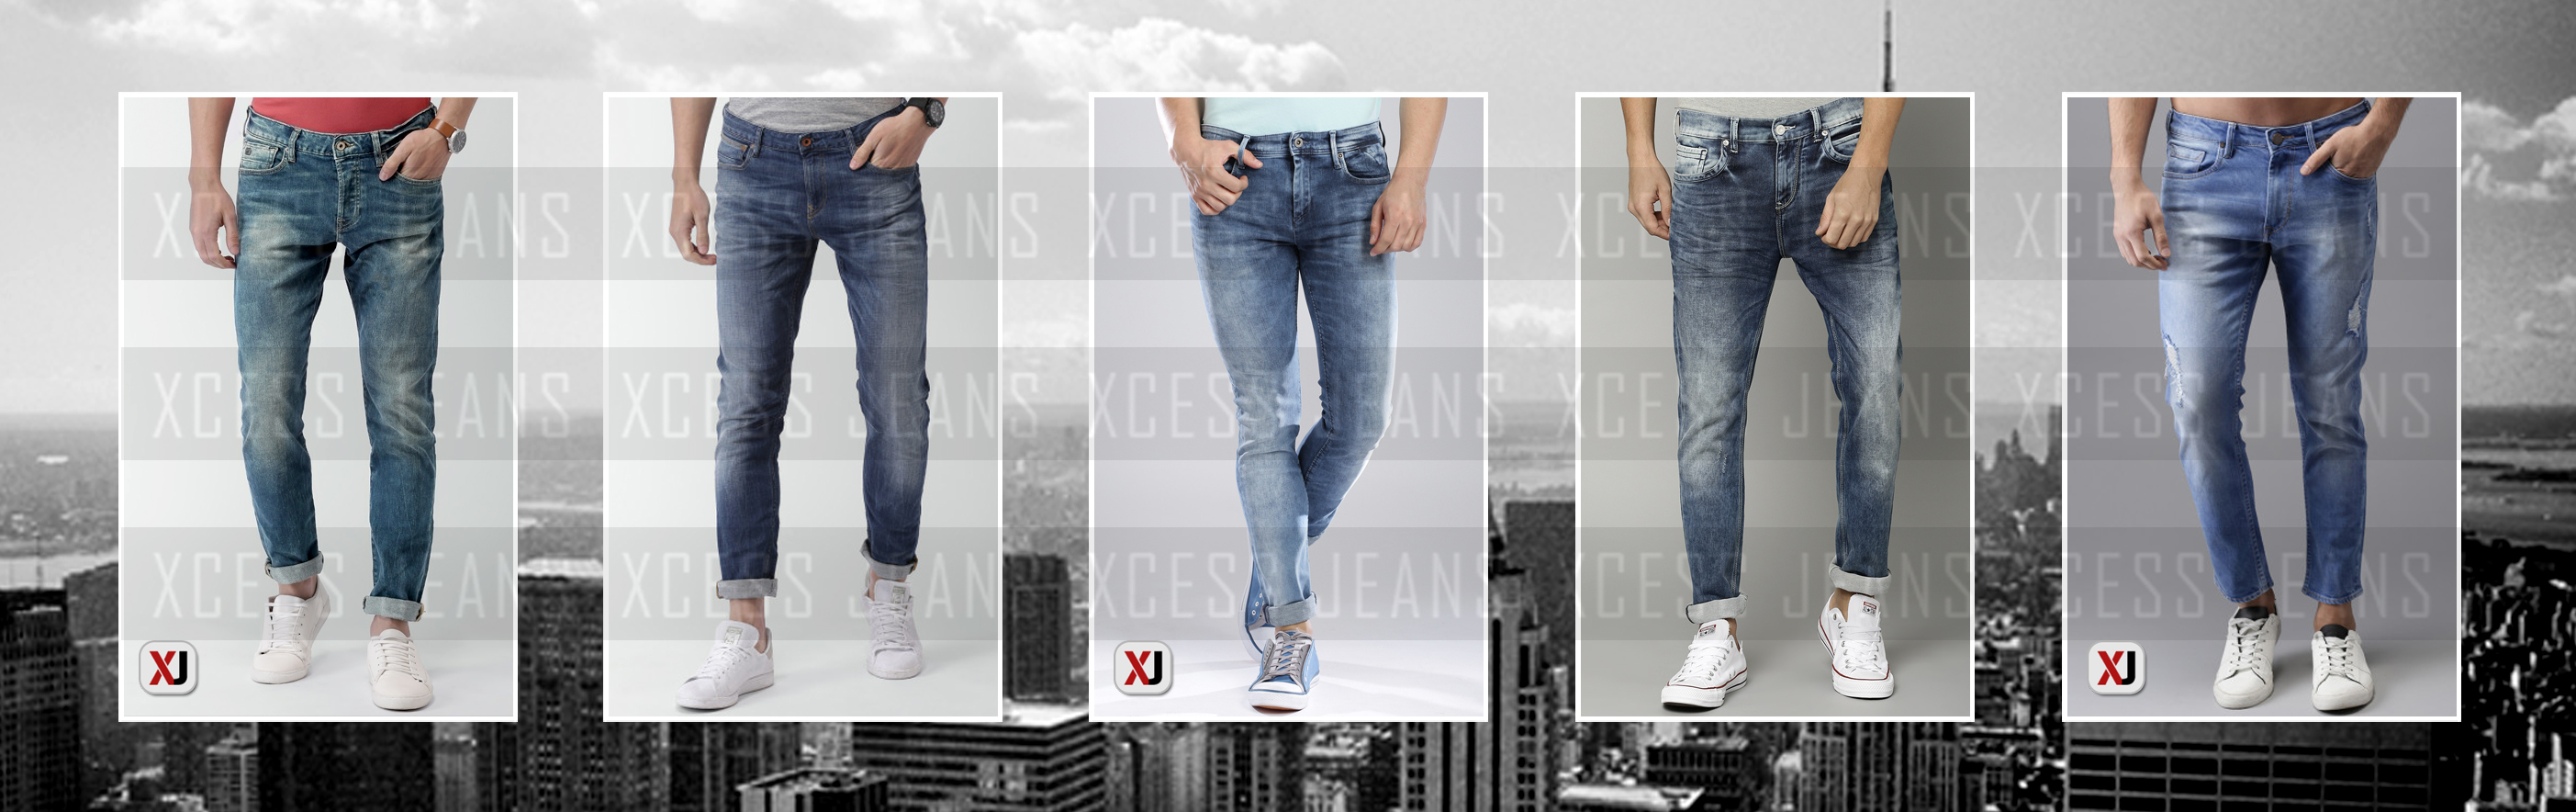 """945a90ea ... we have to know about the history of jeans. It started in US in the  nineteenth century when a workers' wife requested our tailor named """"Jacob  Davis"""" to ..."""